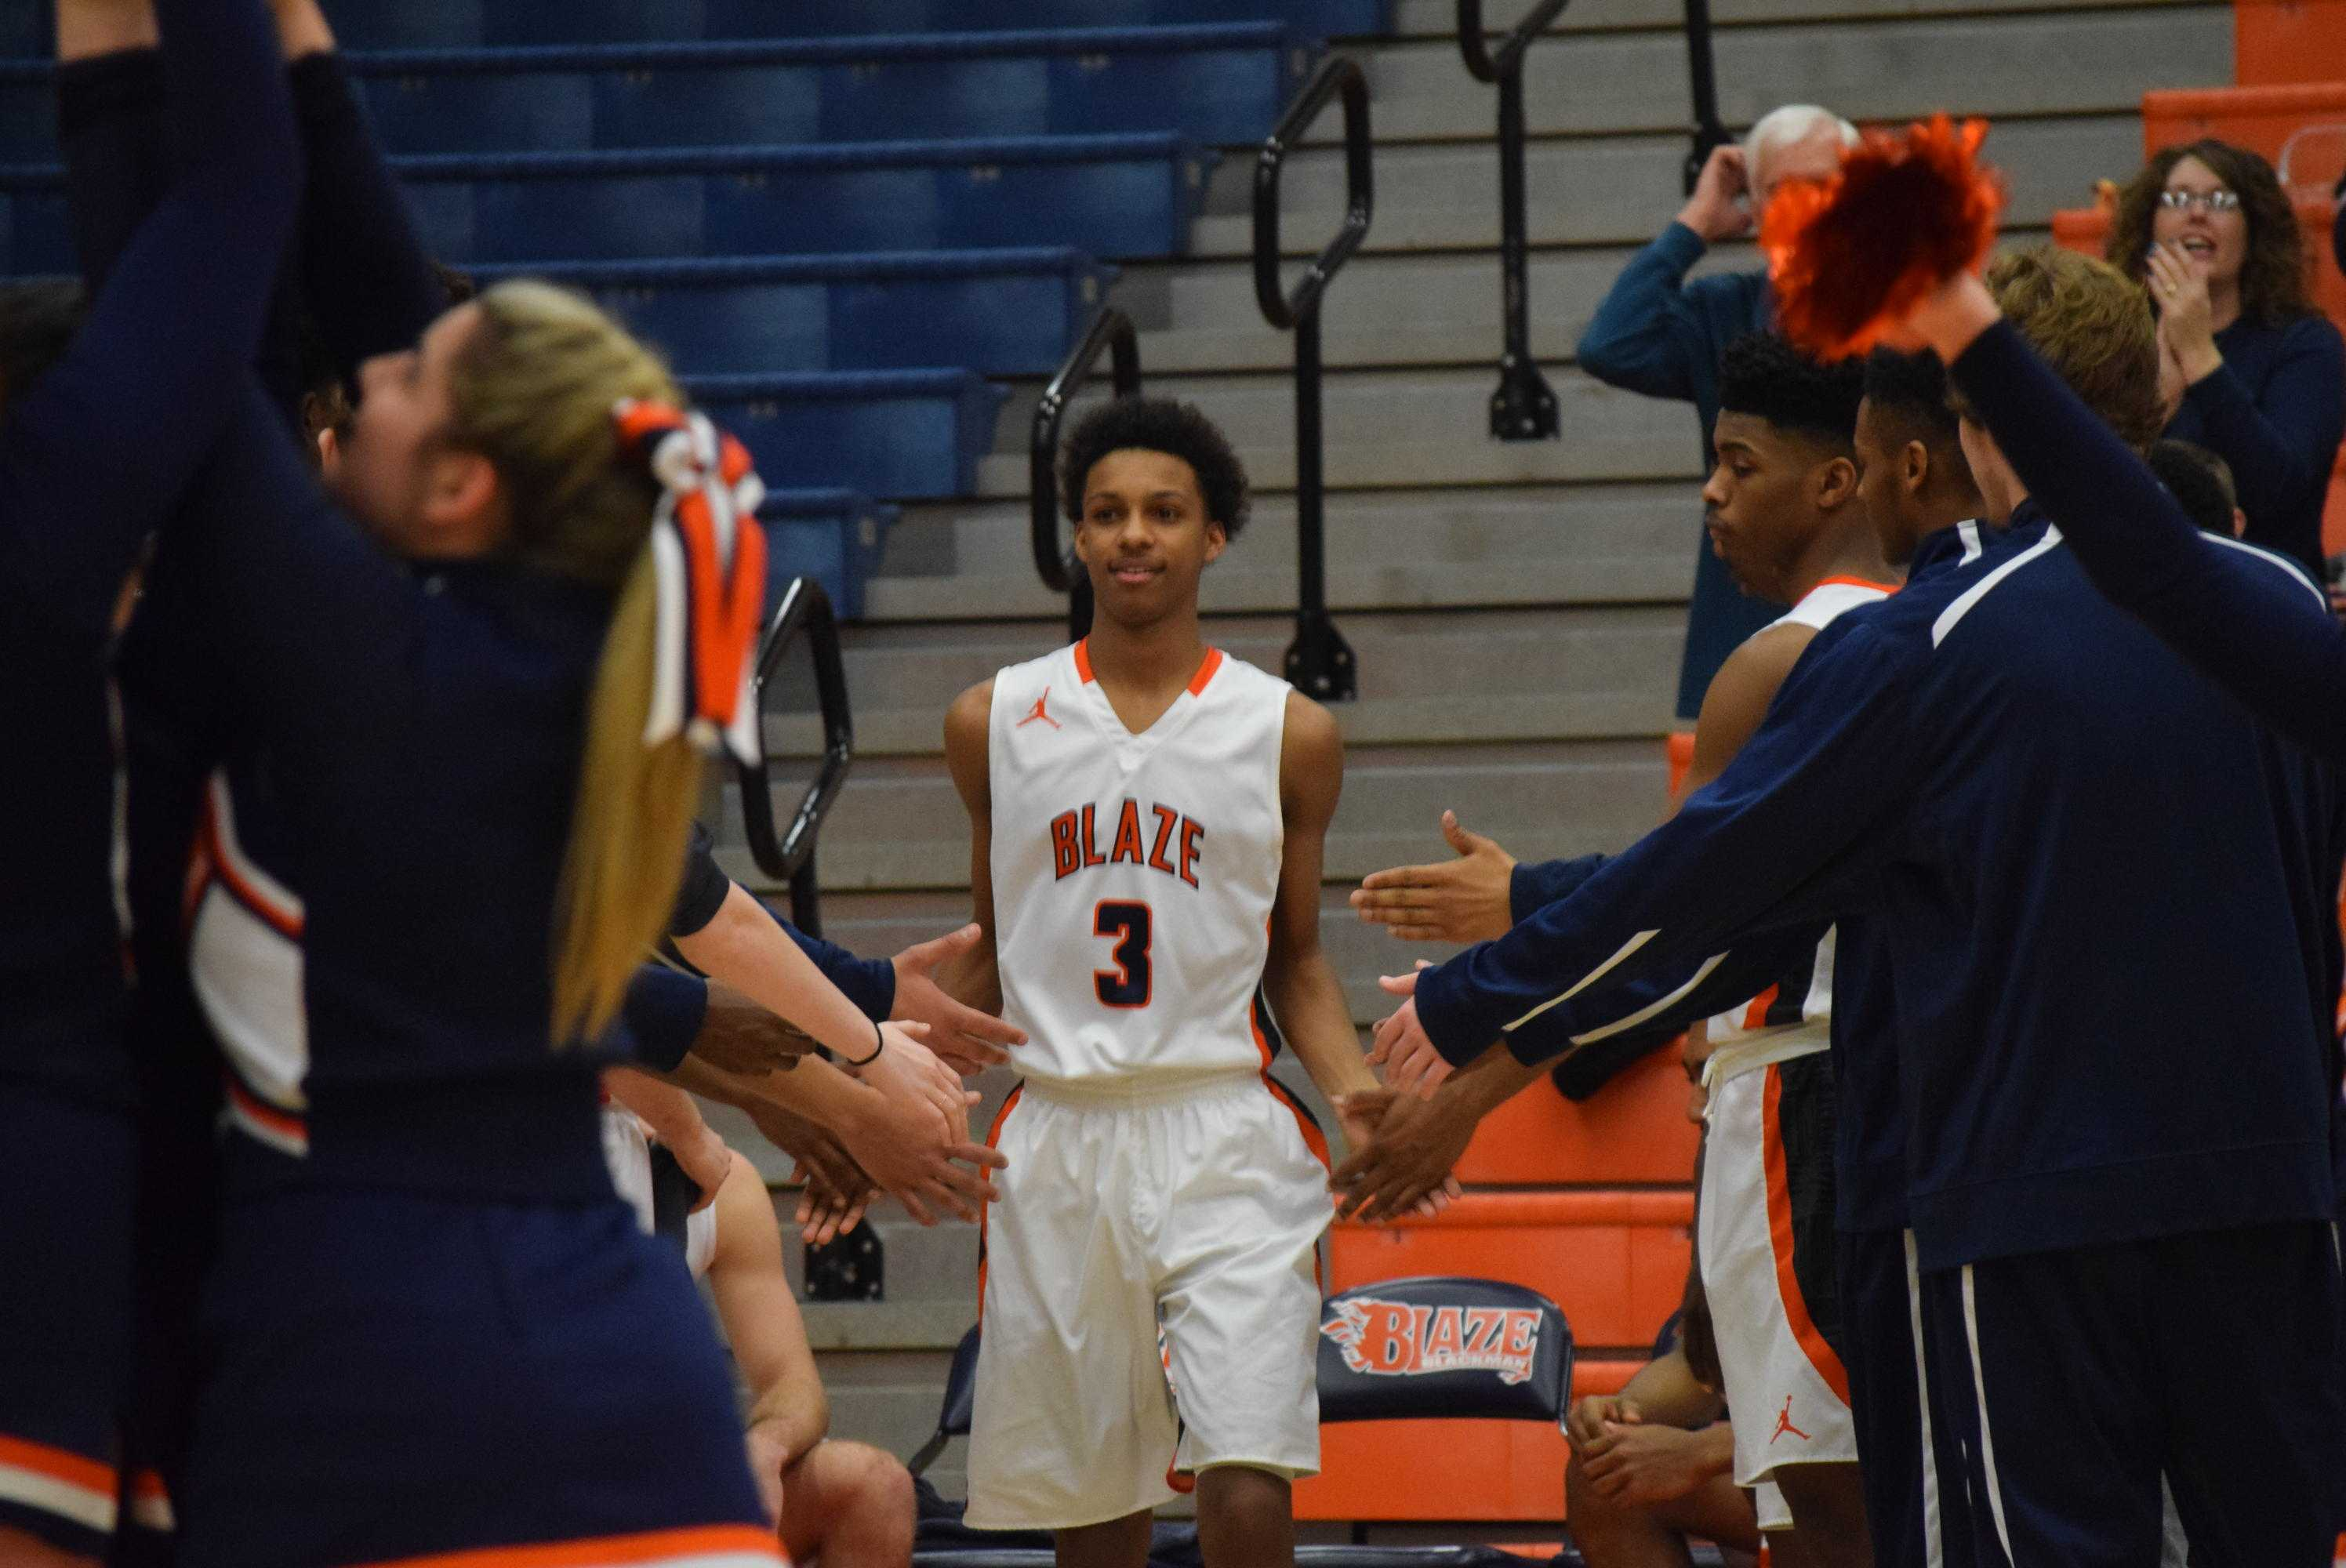 Photo by Jared Robinson Sims walks out for the starting lineups in the Region 4A quarterfinals